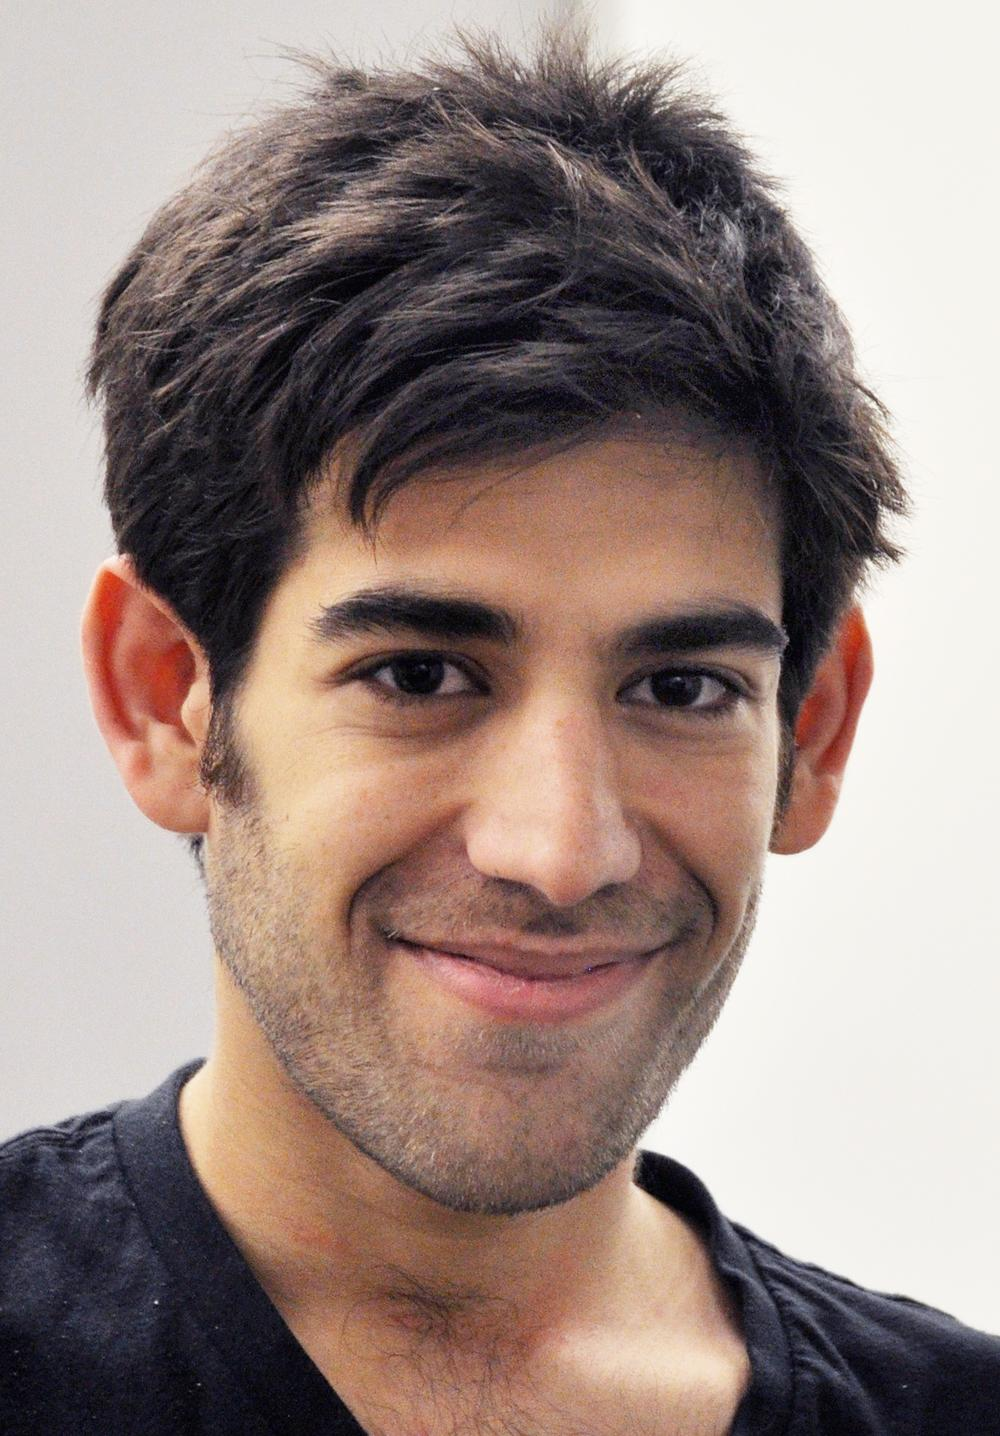 Aaron Swartz, in New York (AP Photo/ThoughtWorks, Pernille Ironside)